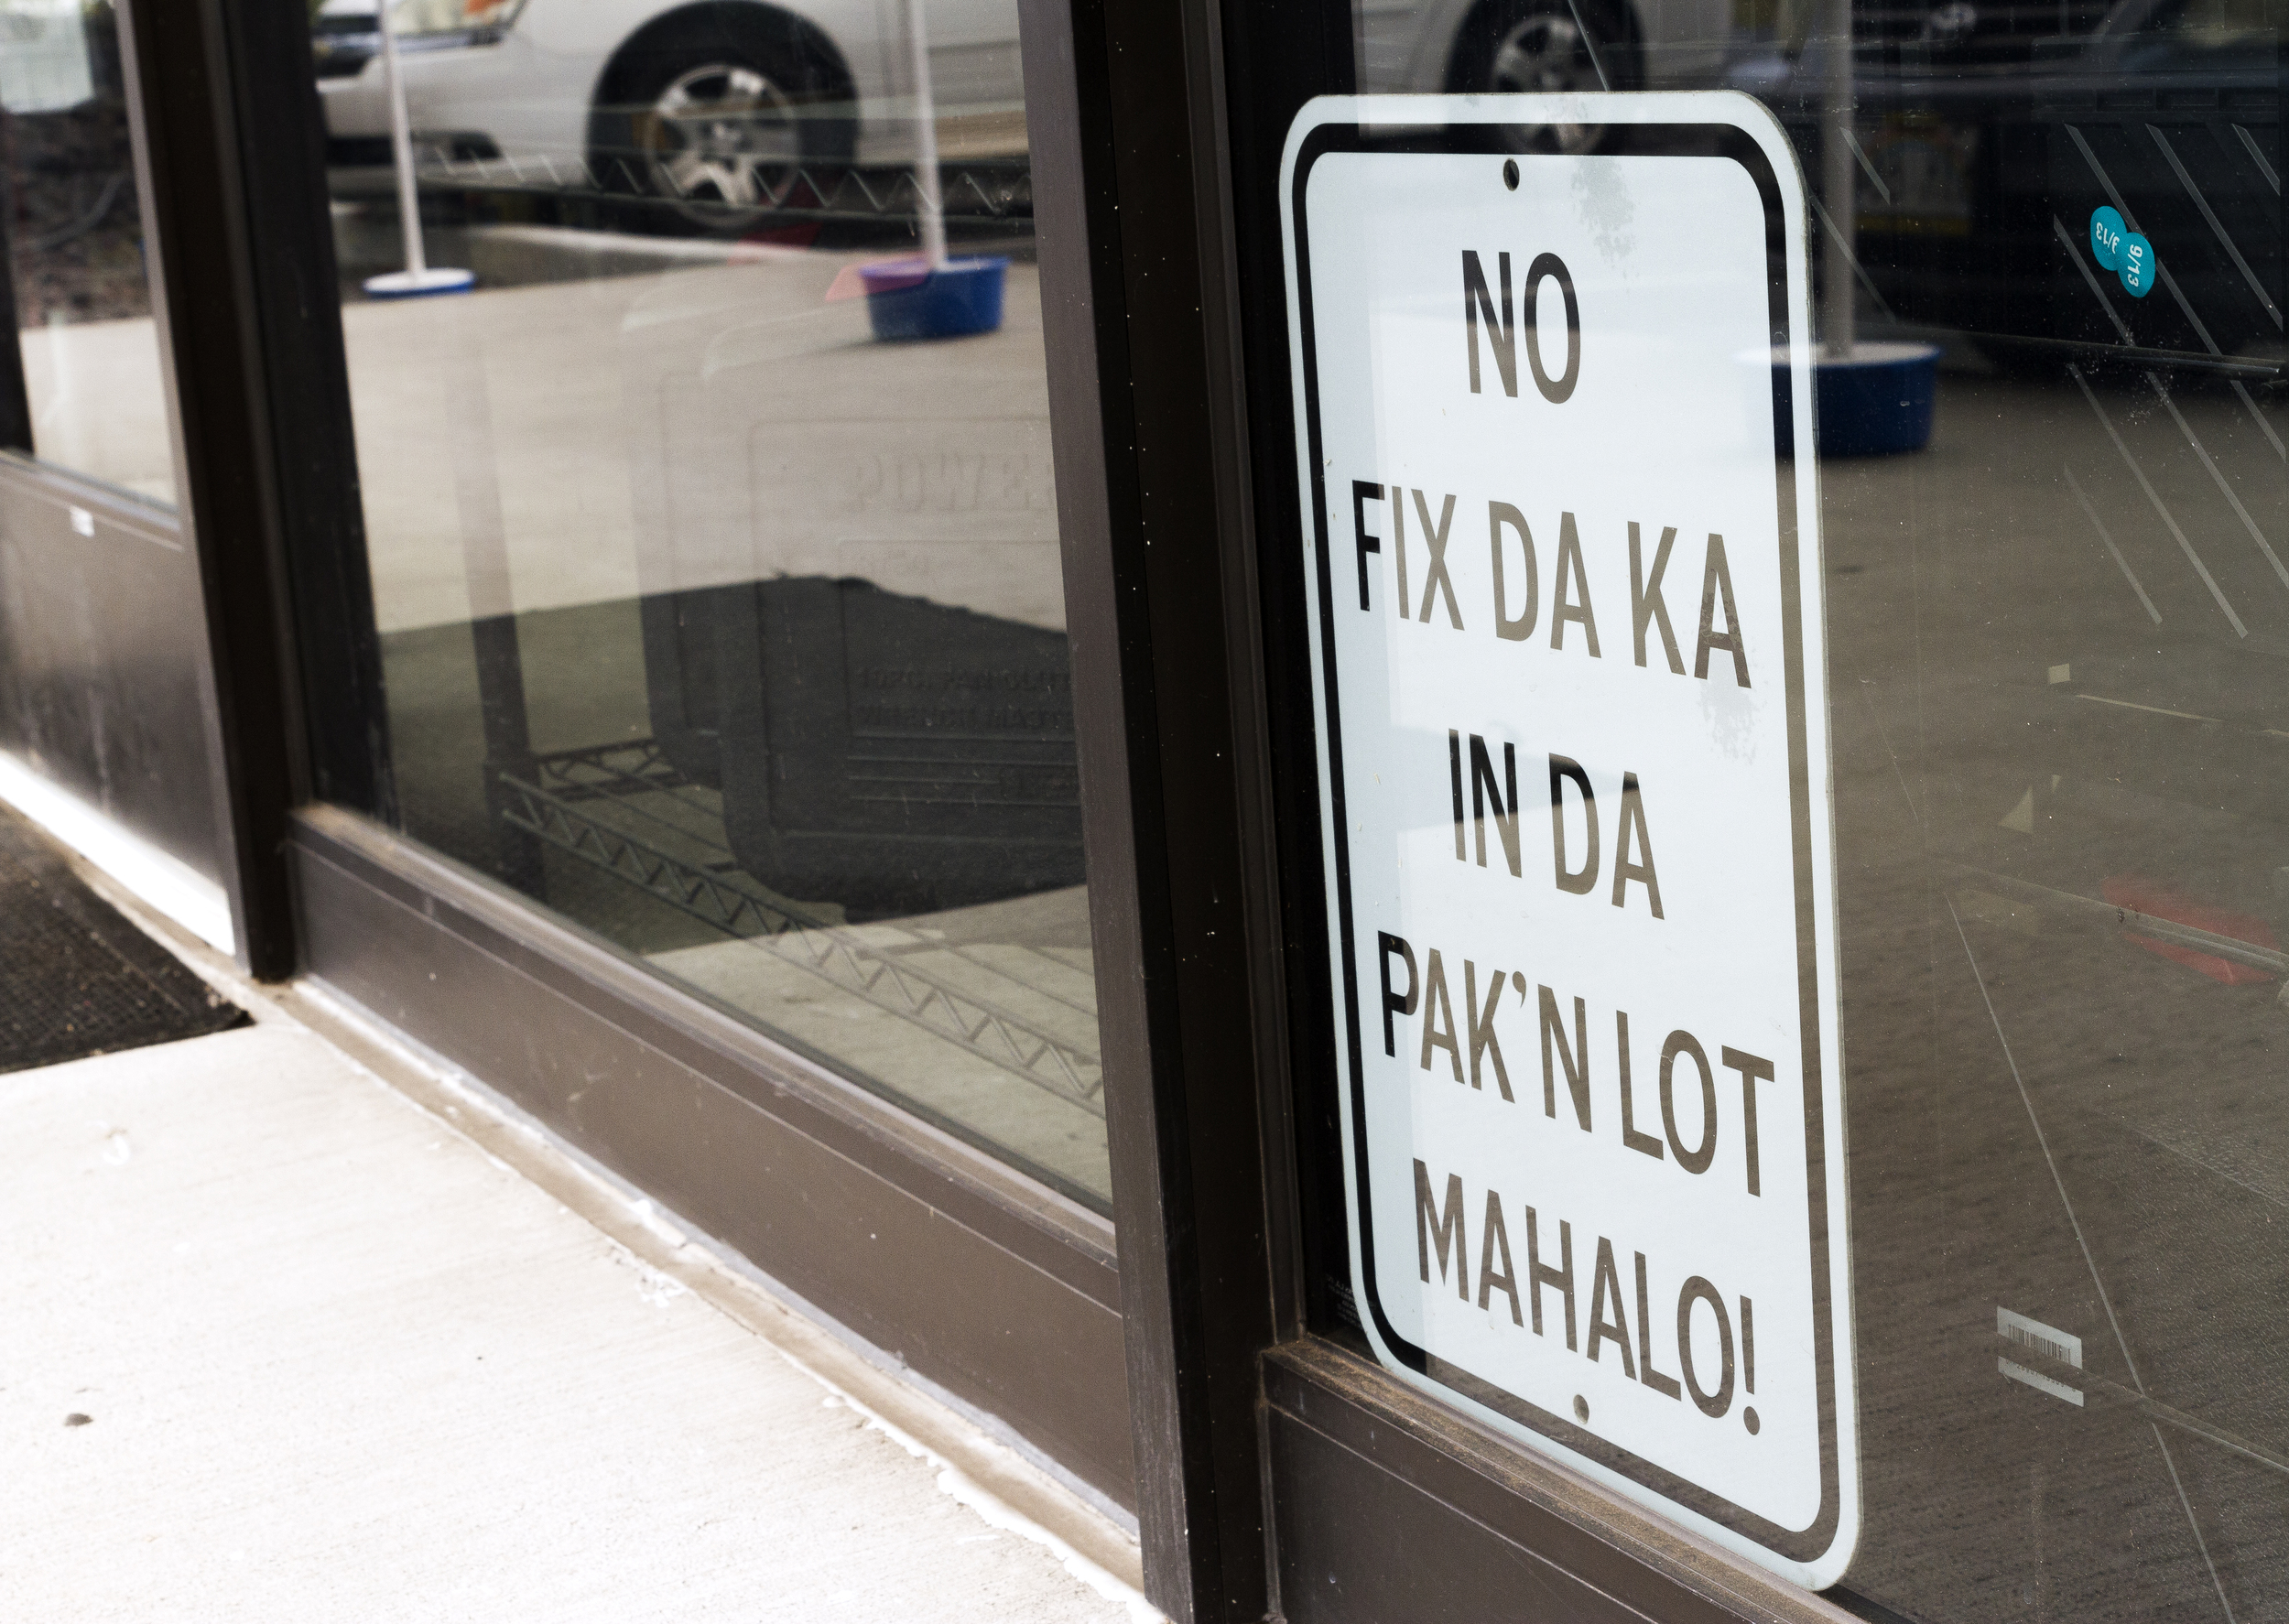 Typical Sign seen in Hawaii's parking lots.